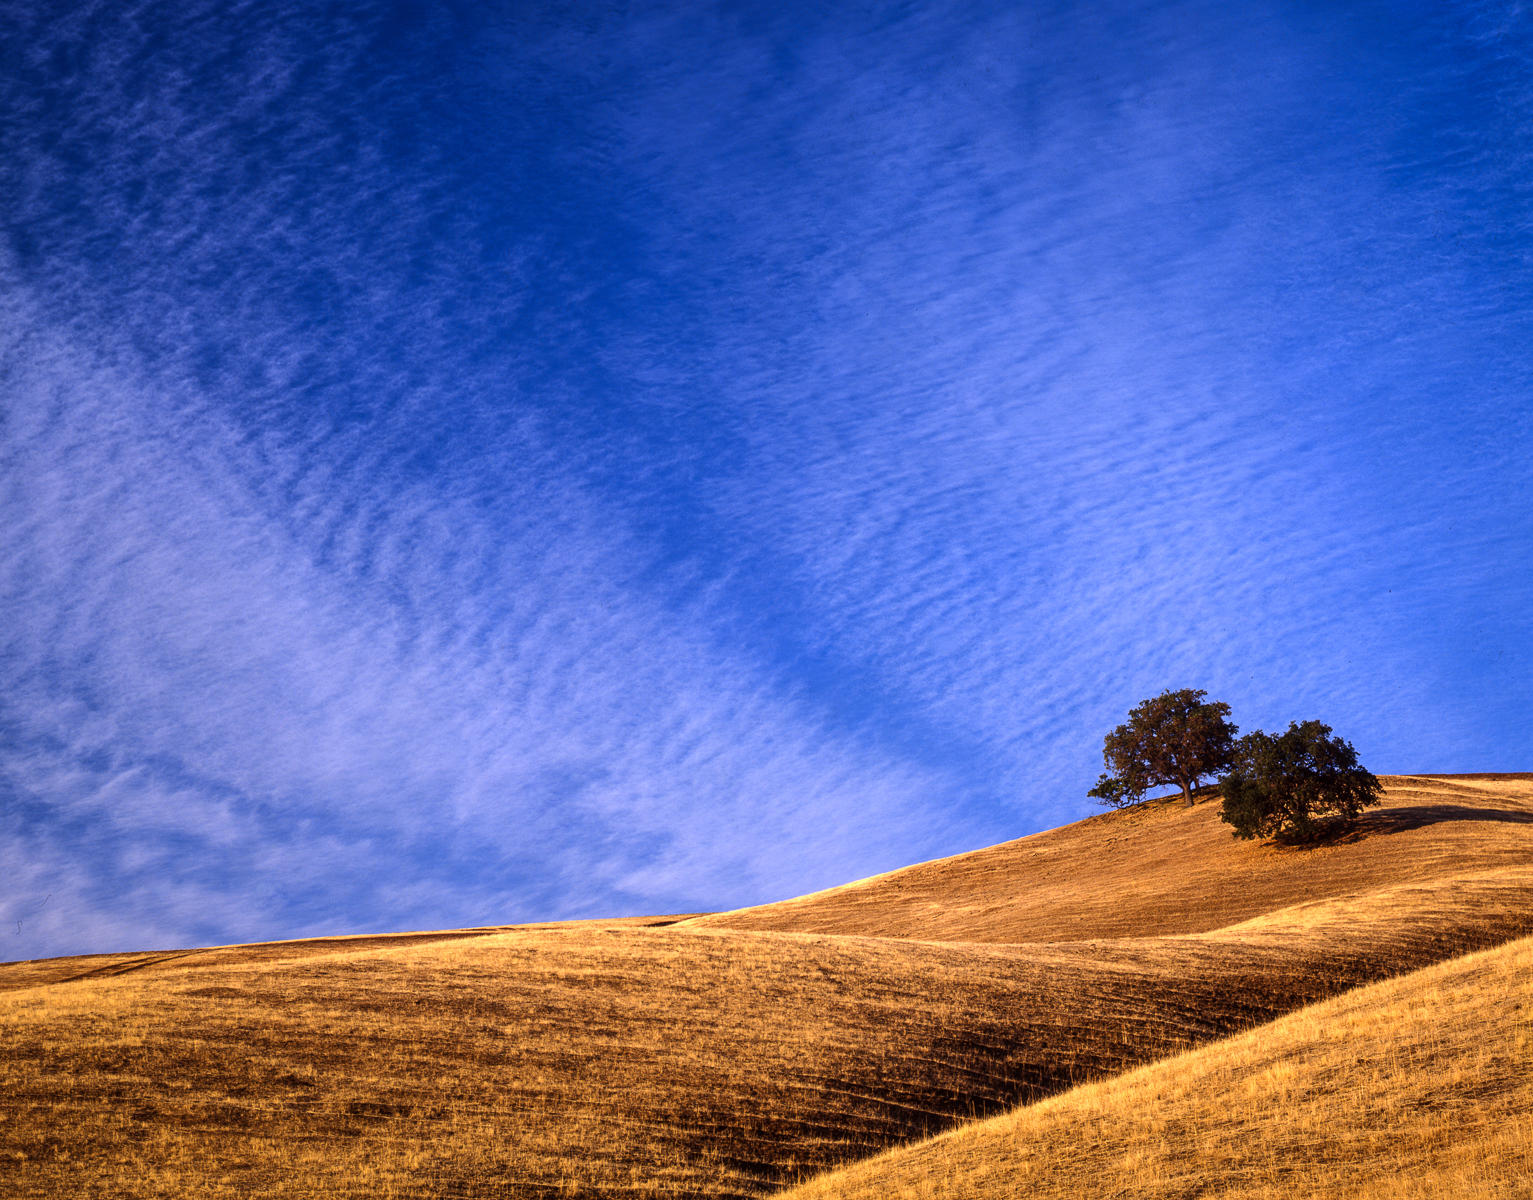 Oak Trees, Mt. Diablo Foothills, California : landscapes : TIMOTHY FLOYD PHOTOGRAPHER, NATURE PHOTOGRAPHY, PHOTO ESSAYS, PHOTOJOURNALISM